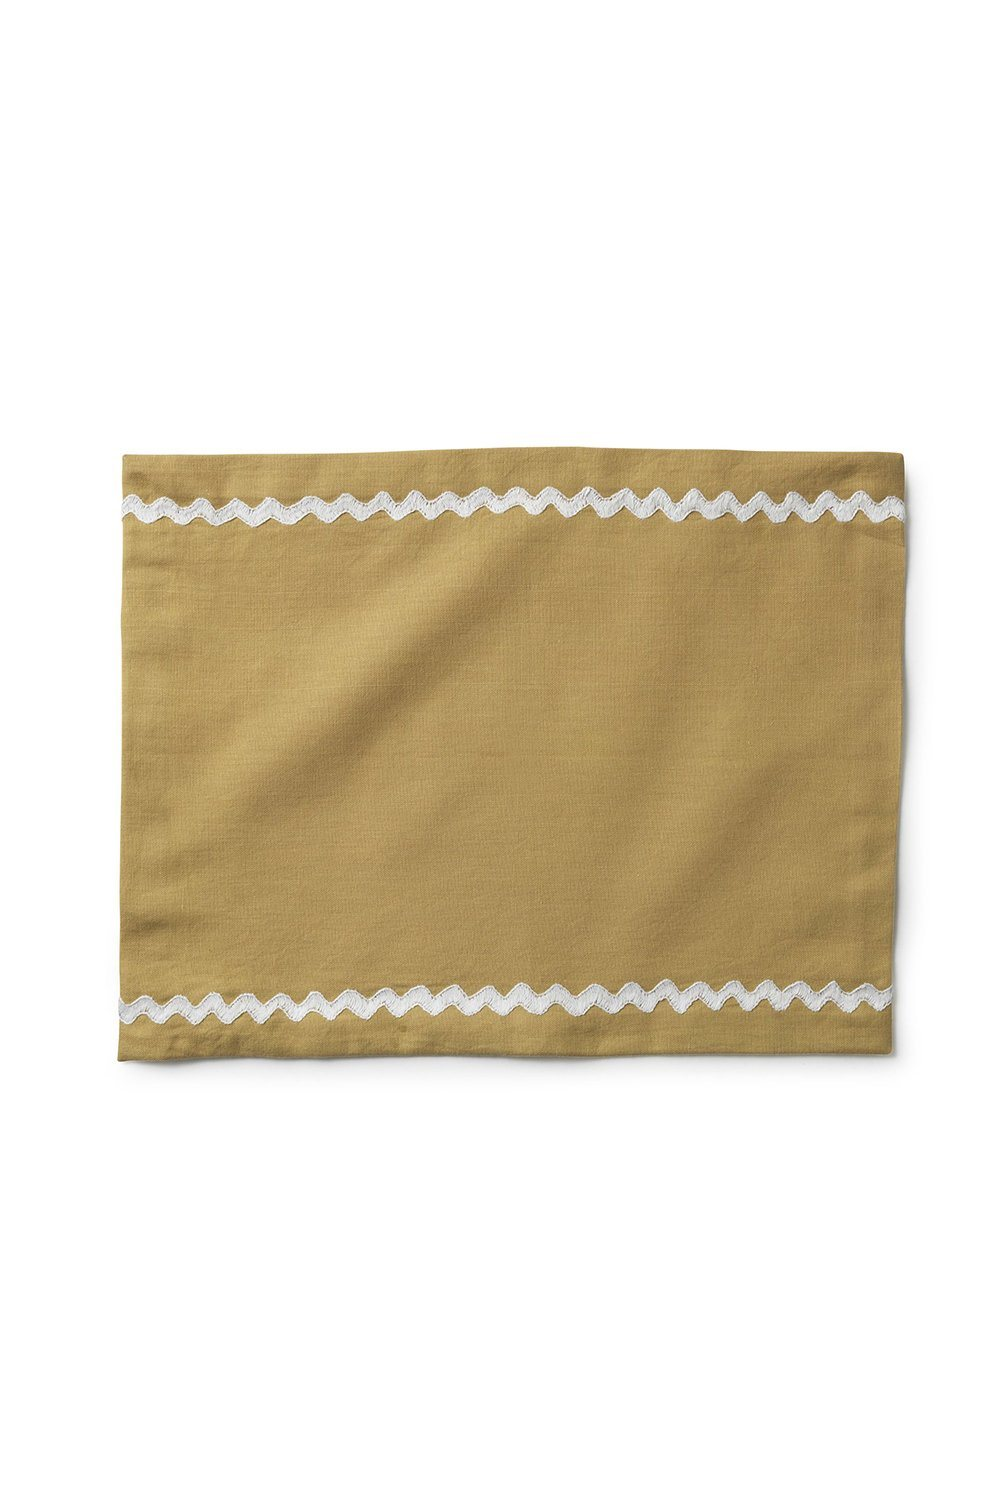 Hand-embroidered zig-zag placemat - Sand Soft Furnishings Jore Copenhagen